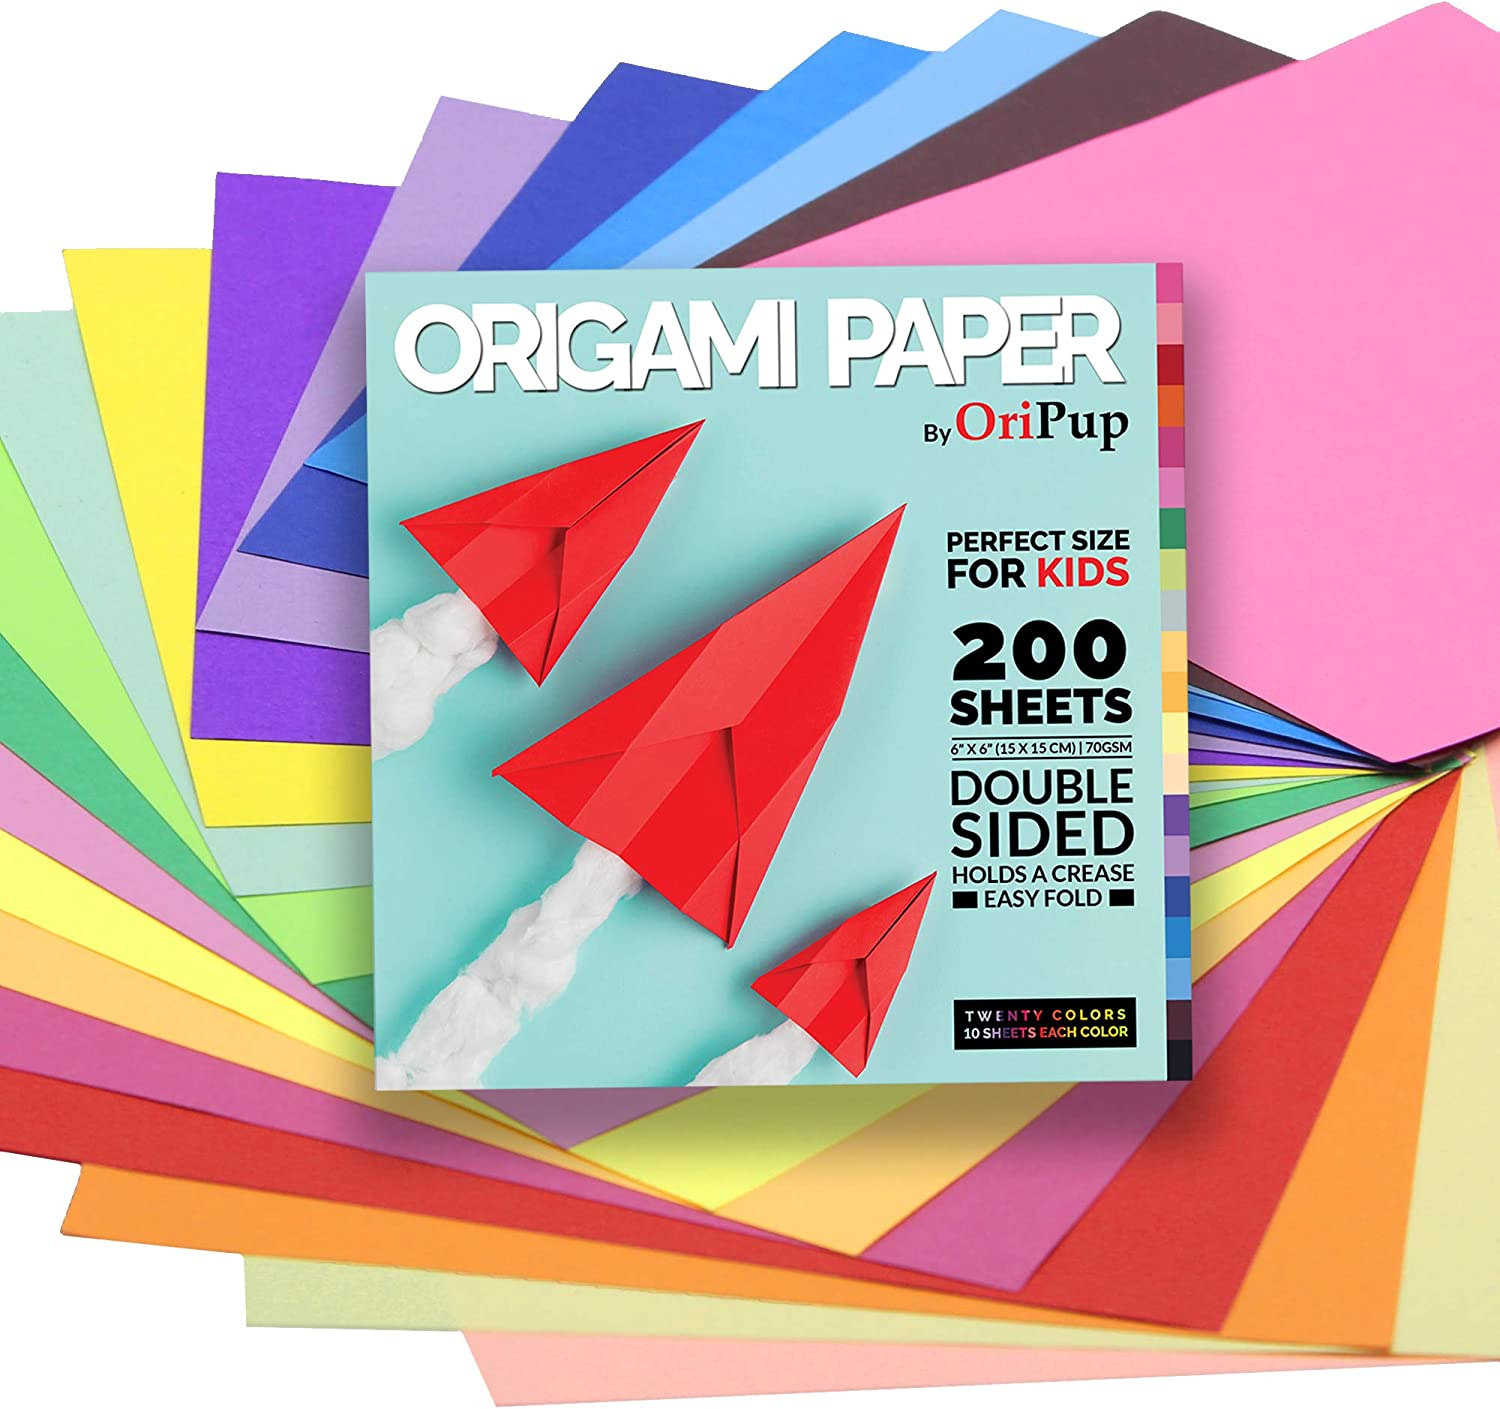 Oripup Origami Paper Double Sided - 200 Sheets in 20 Colors for Crafts - 6x6 inch Colored Square Paper for Kids, Adults and Beginners